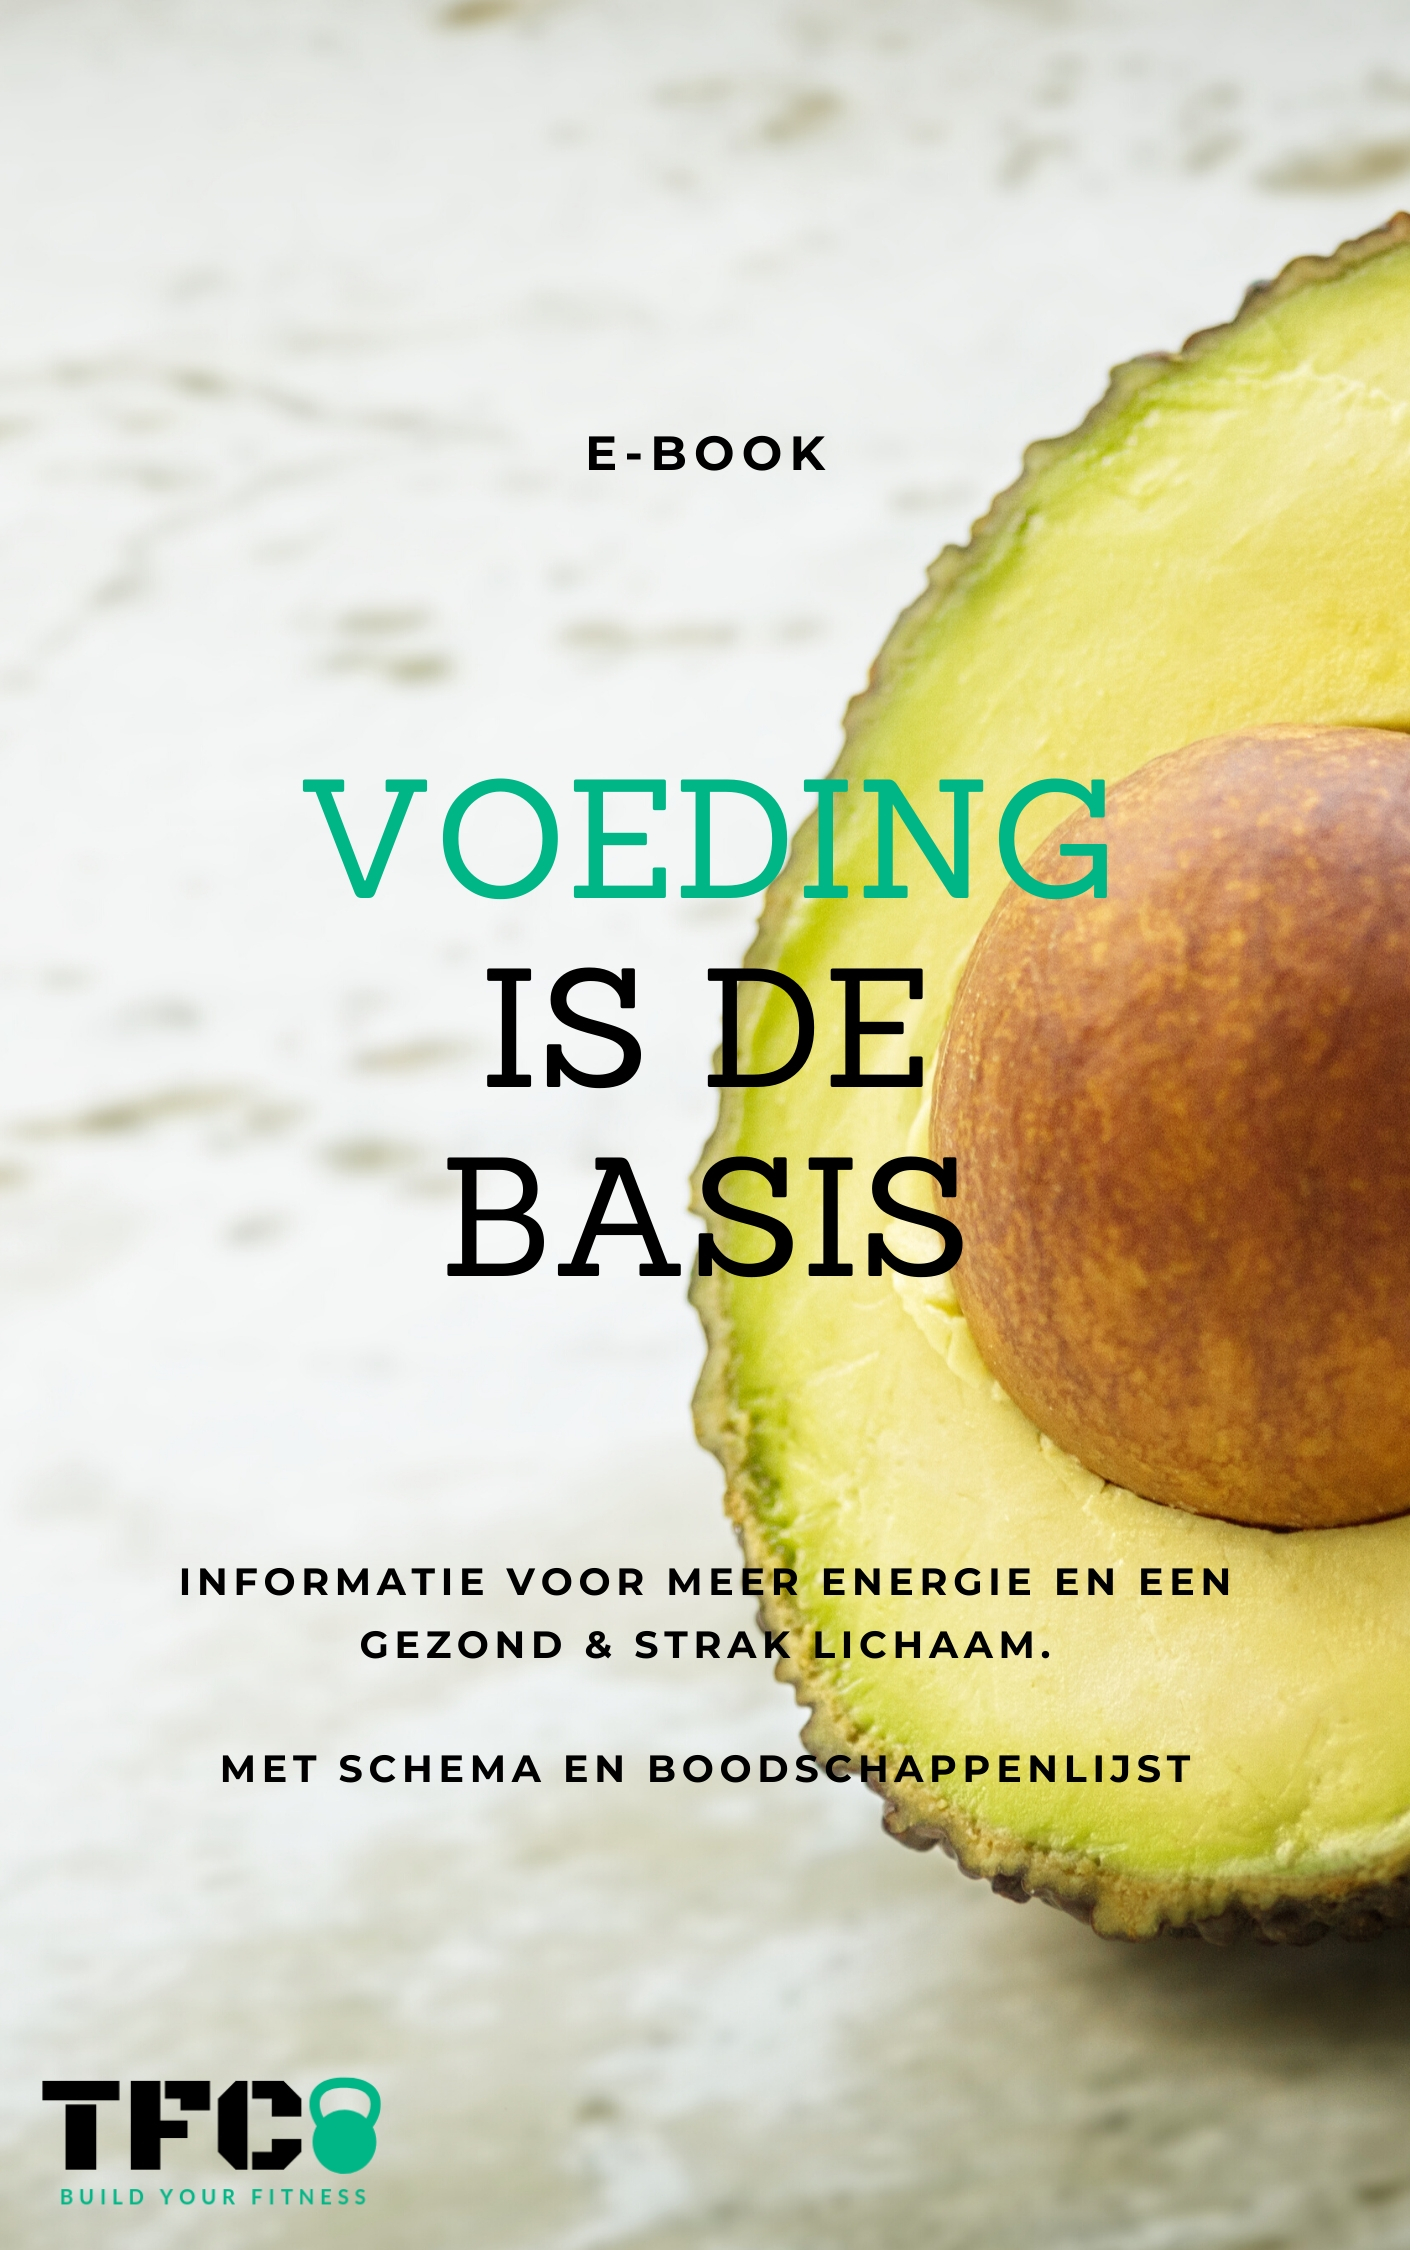 E-book Voeding is de basis